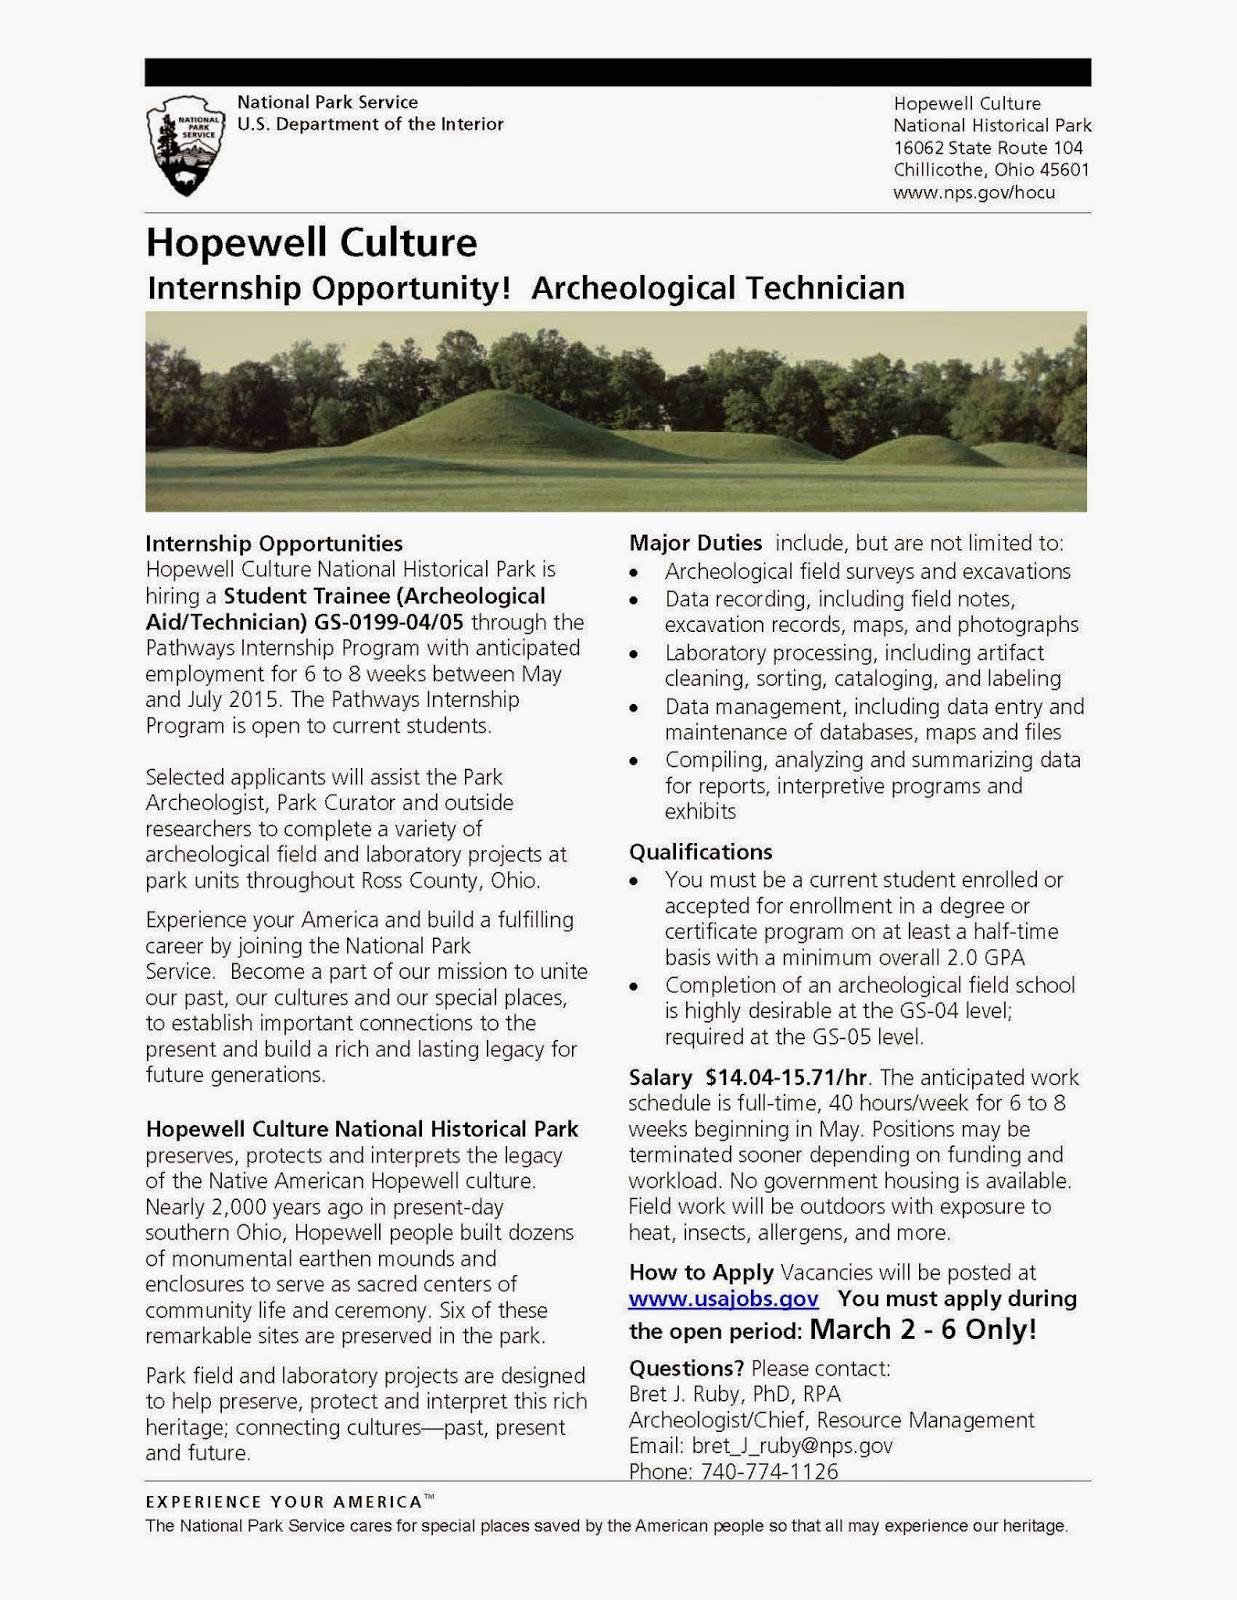 Hopewell Culture Internship Opportunity! Archaeological Technician